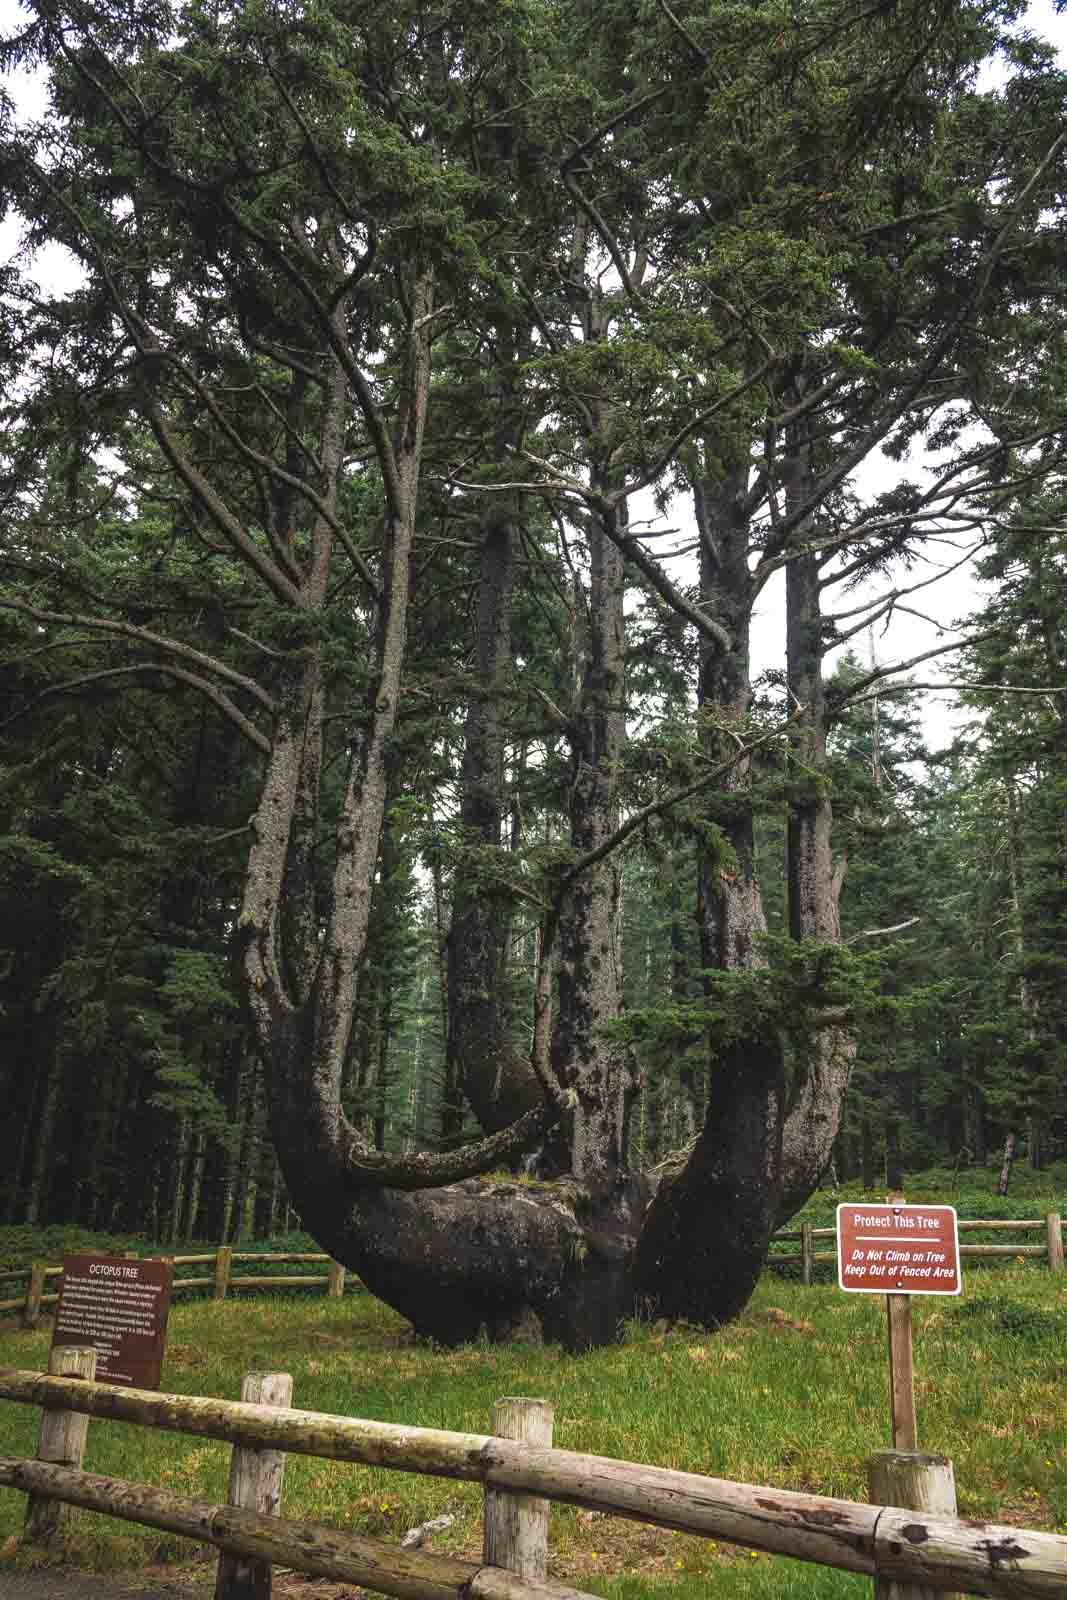 Octopus Tree near Cape Meares Lighthouse, one of the best Oregon Lighthouses